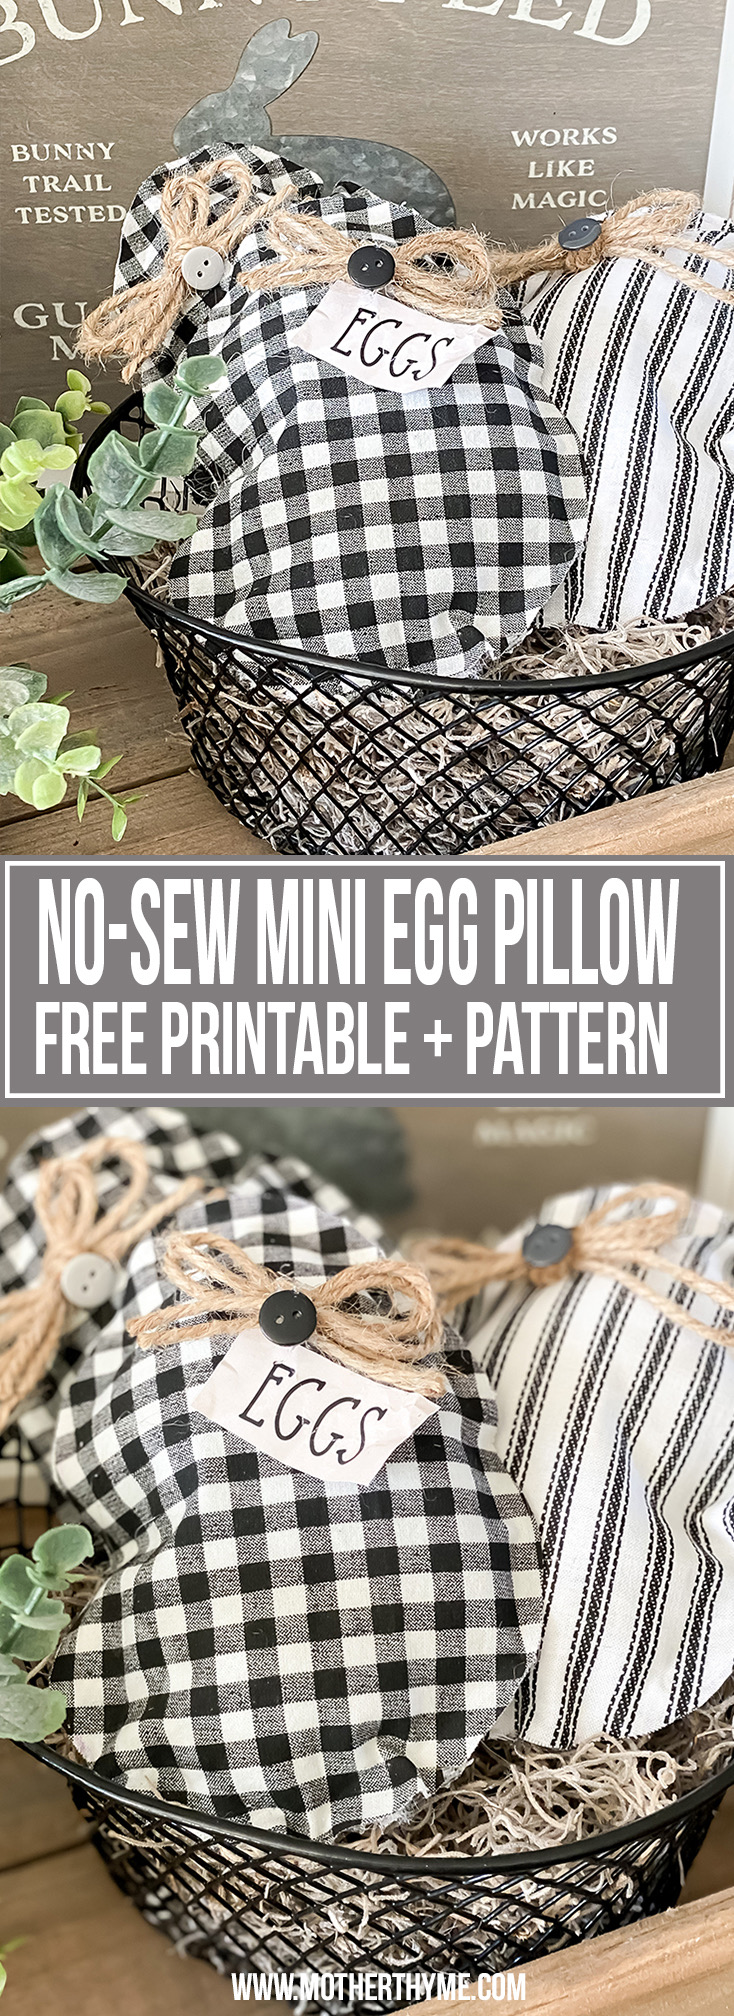 N0-SEW MINI EGG PILLOW - FREE PATTERN + PRINTABLE